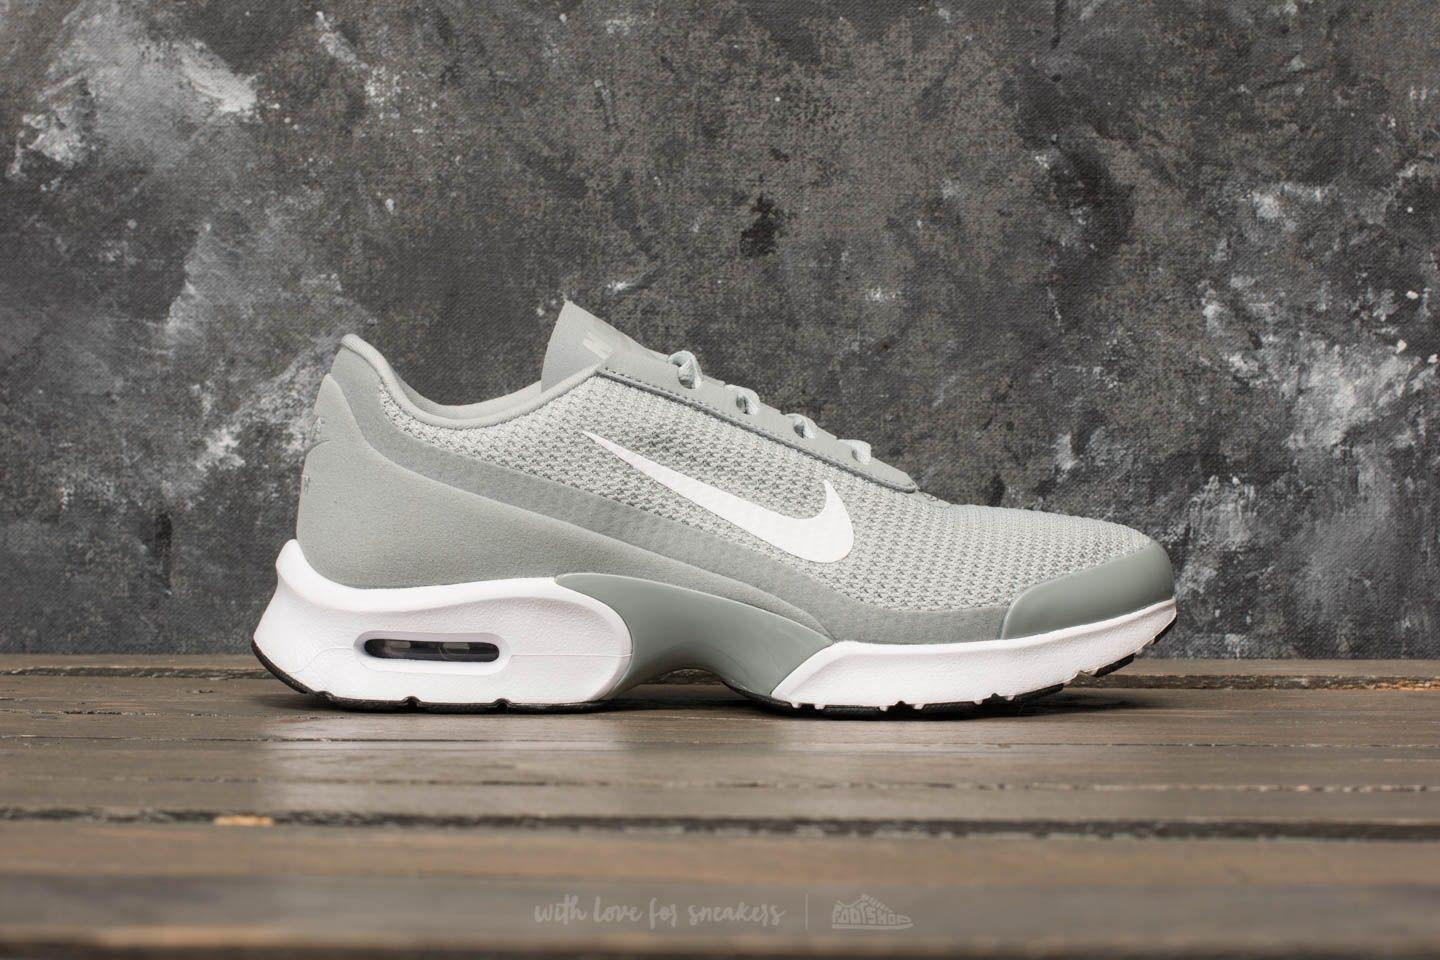 Lyst - Nike Nike Wmns Air Max Jewell Light Pumice  White-black in Black 5891866a0